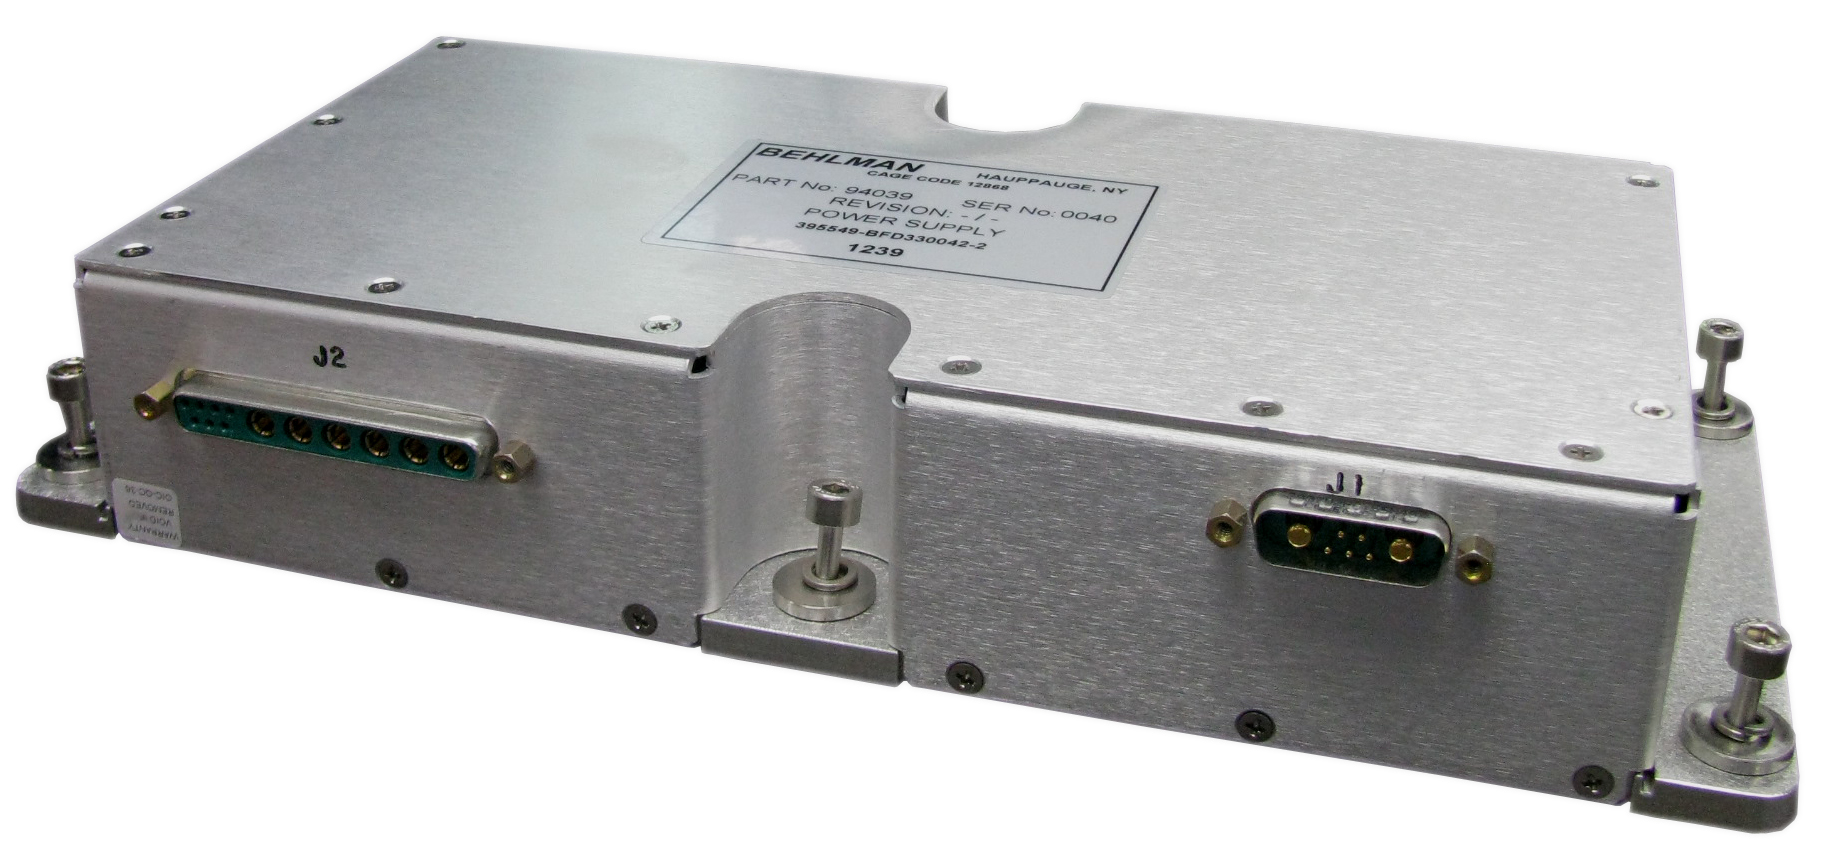 1000Watts power factor corrected input,COTS mil power supply with triple DC outputs